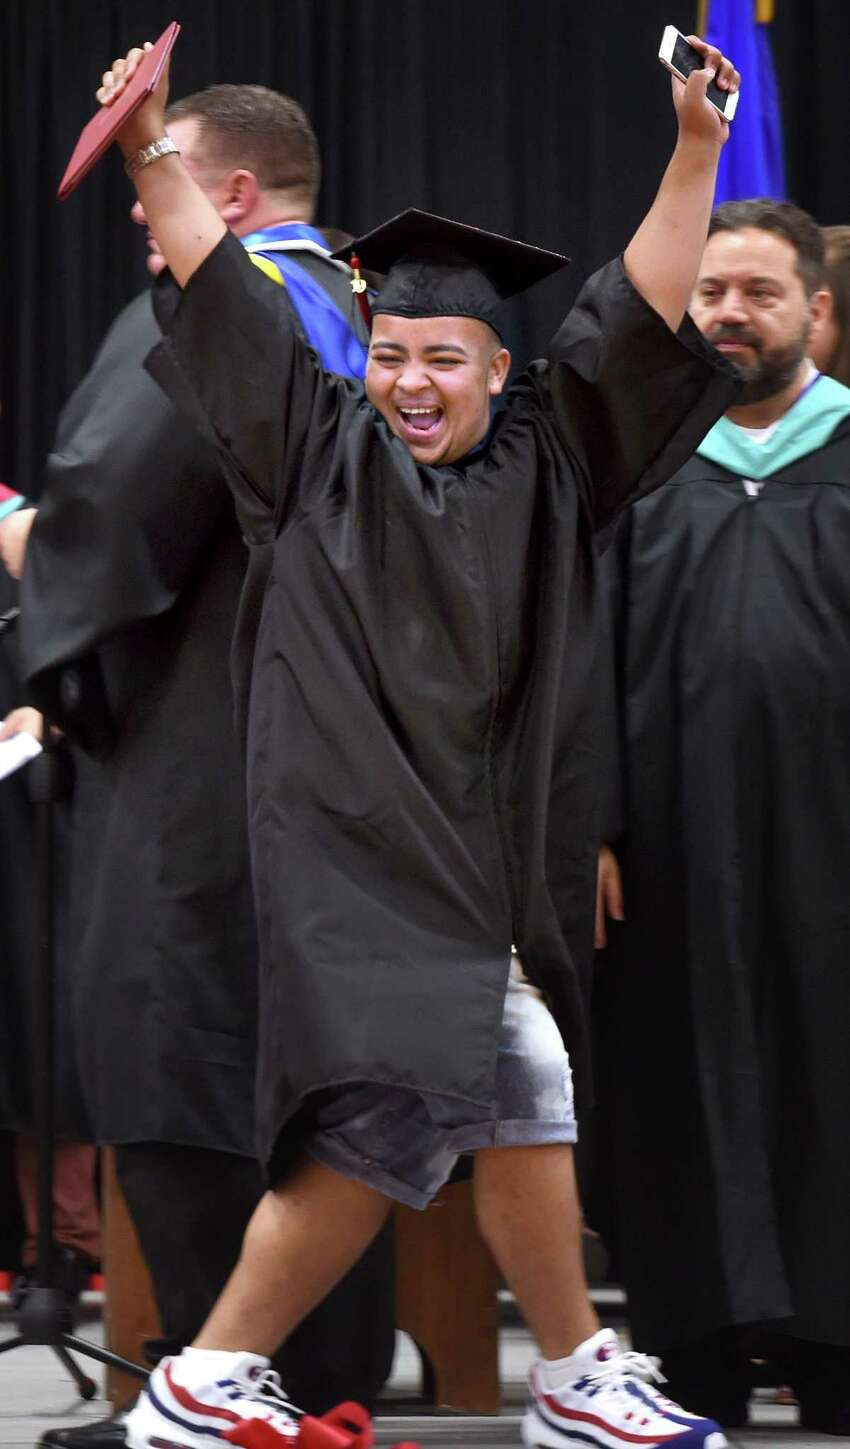 Taj-Amir Oquendo celebrates after receiving his diploma during graduation exercises at Central High School in Bridgeport on June 18, 2019.